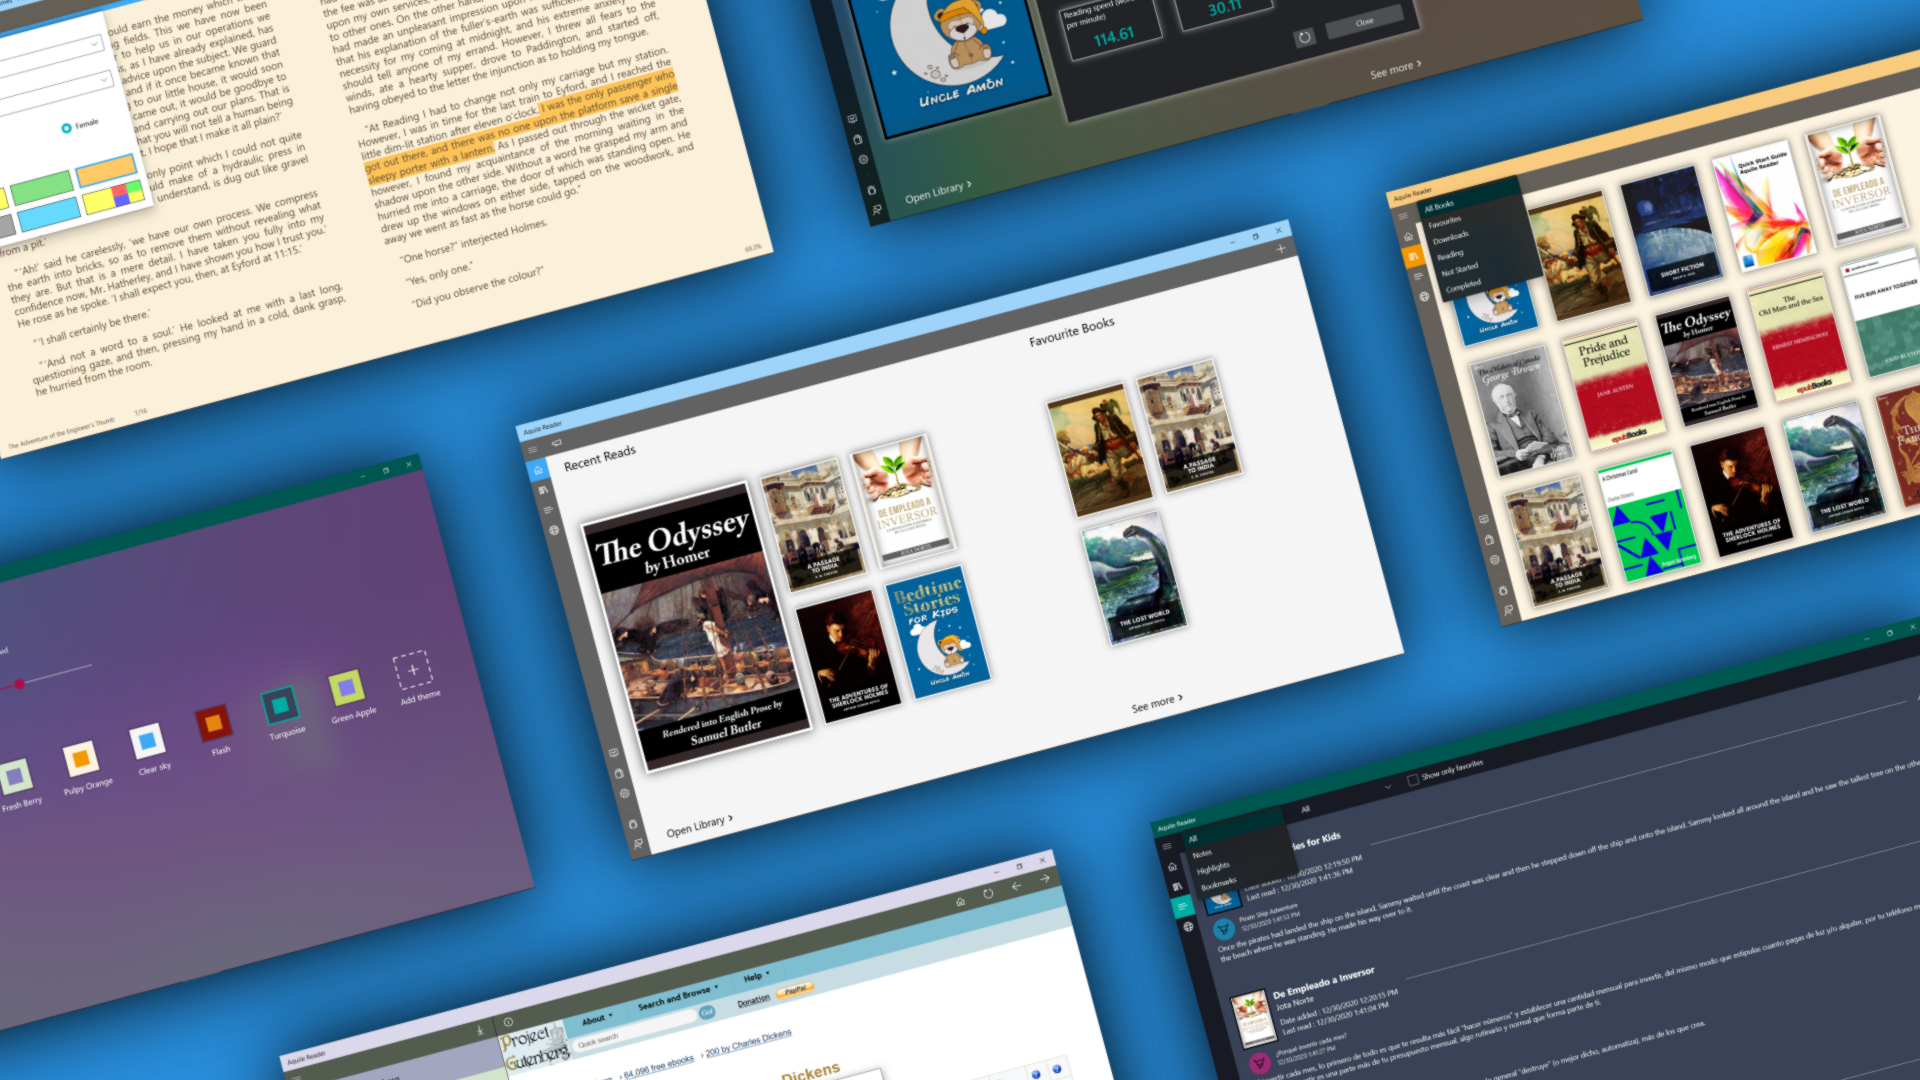 Preview image for Aquile Reader